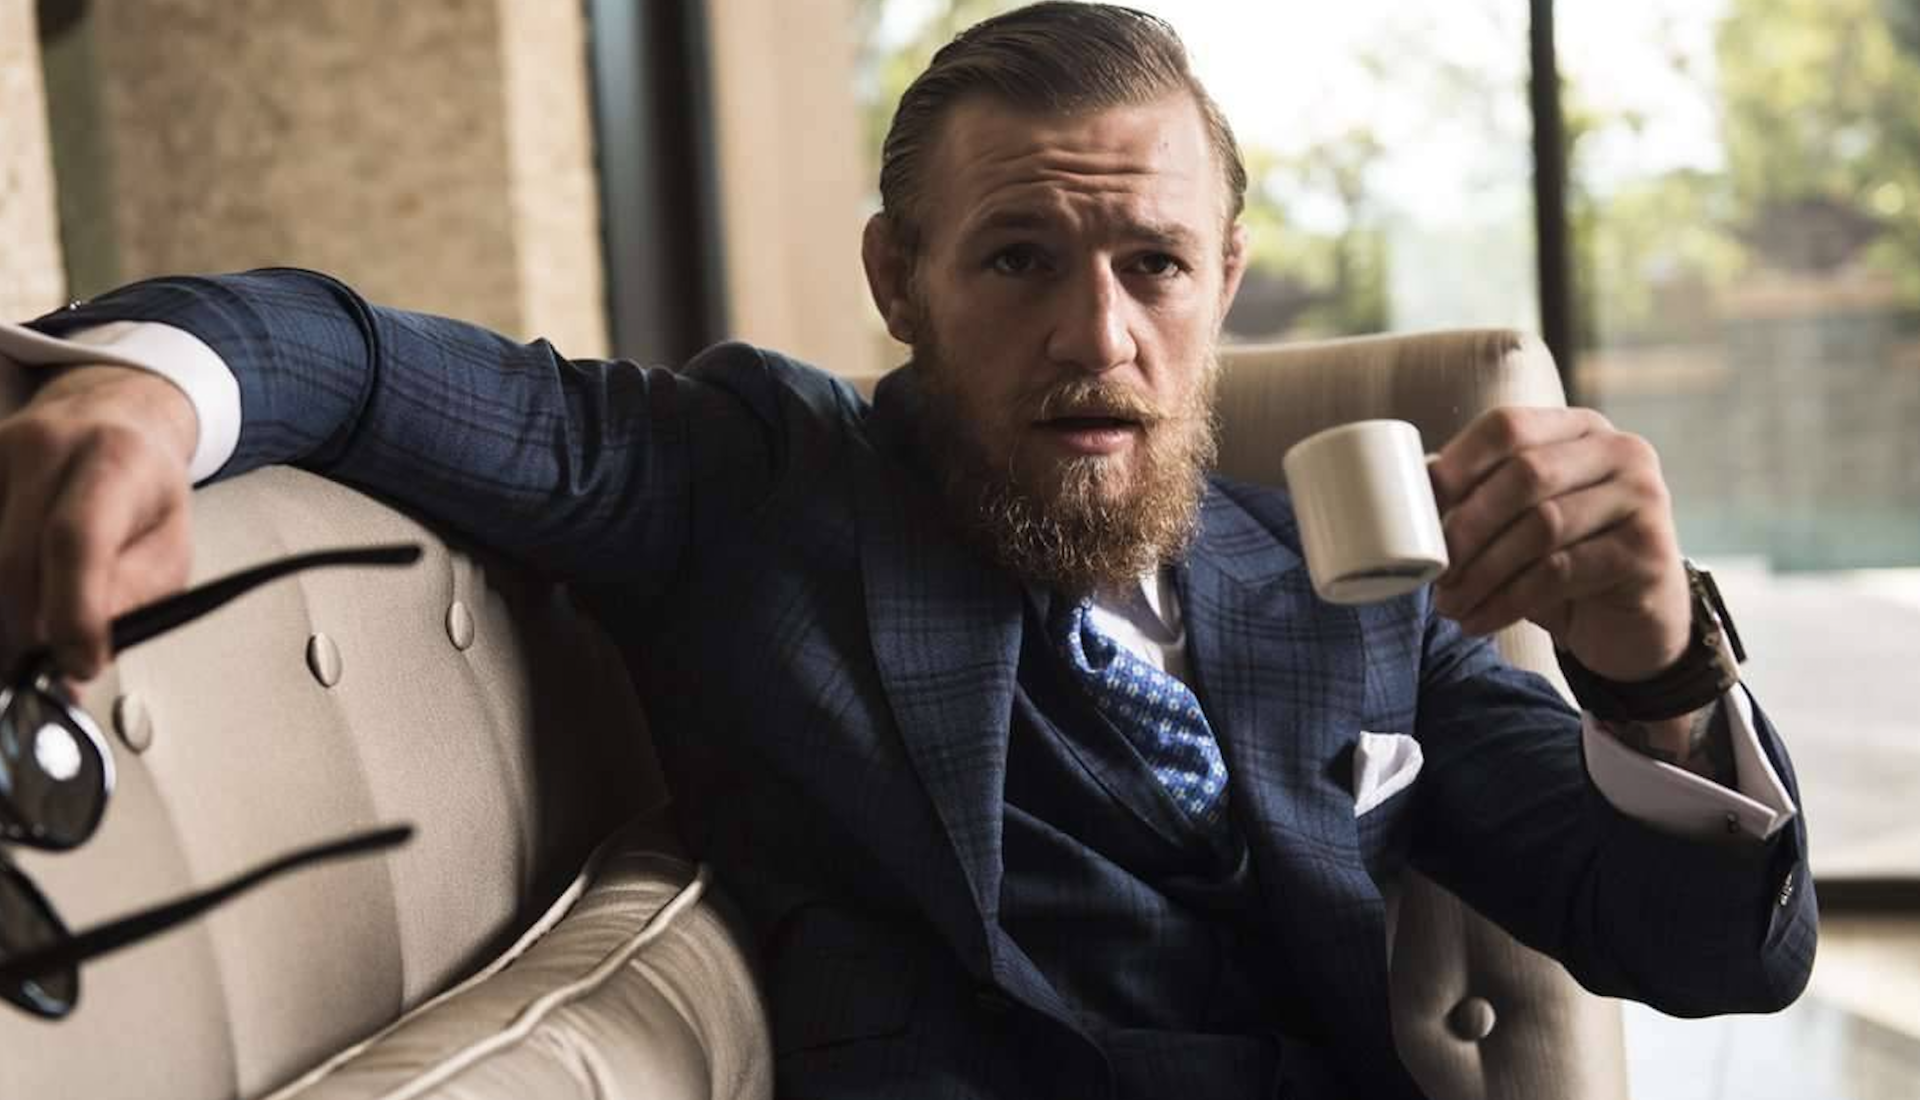 Le « Sport It-boy » de la semaine est Conor McGregor